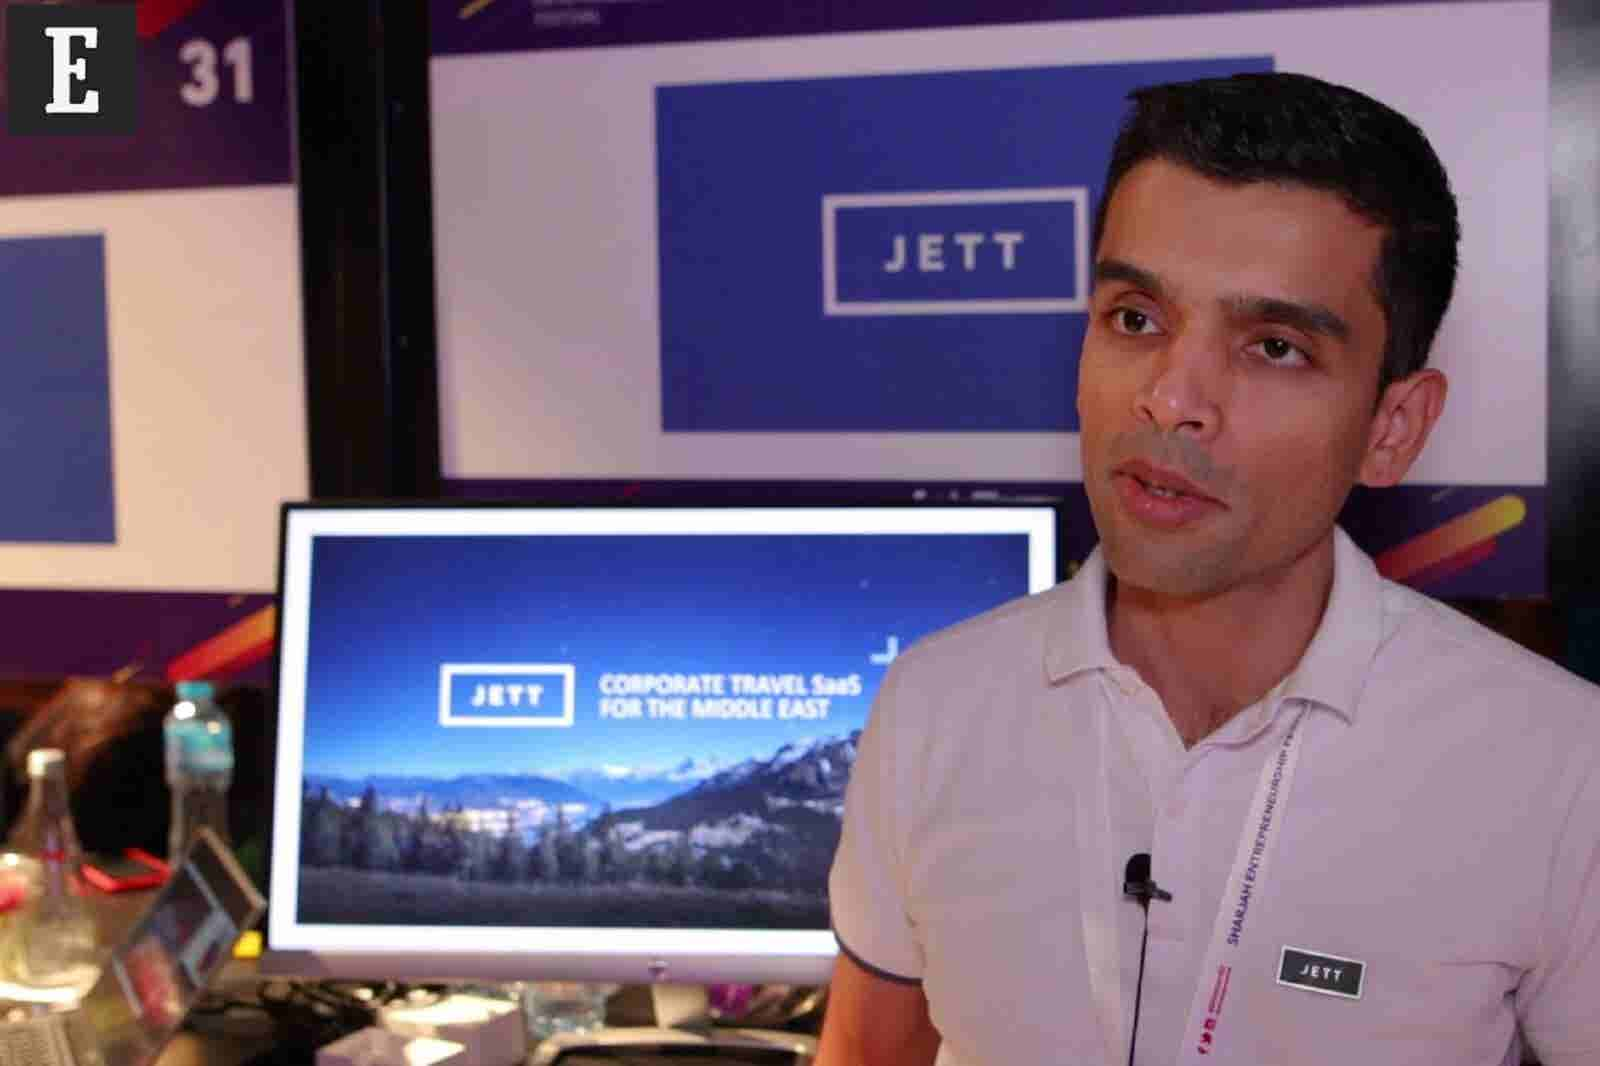 Dubai Startup Jett's Albert Dias Advises Aspiring 'Treps To Cultivate Passion In Their Endeavors